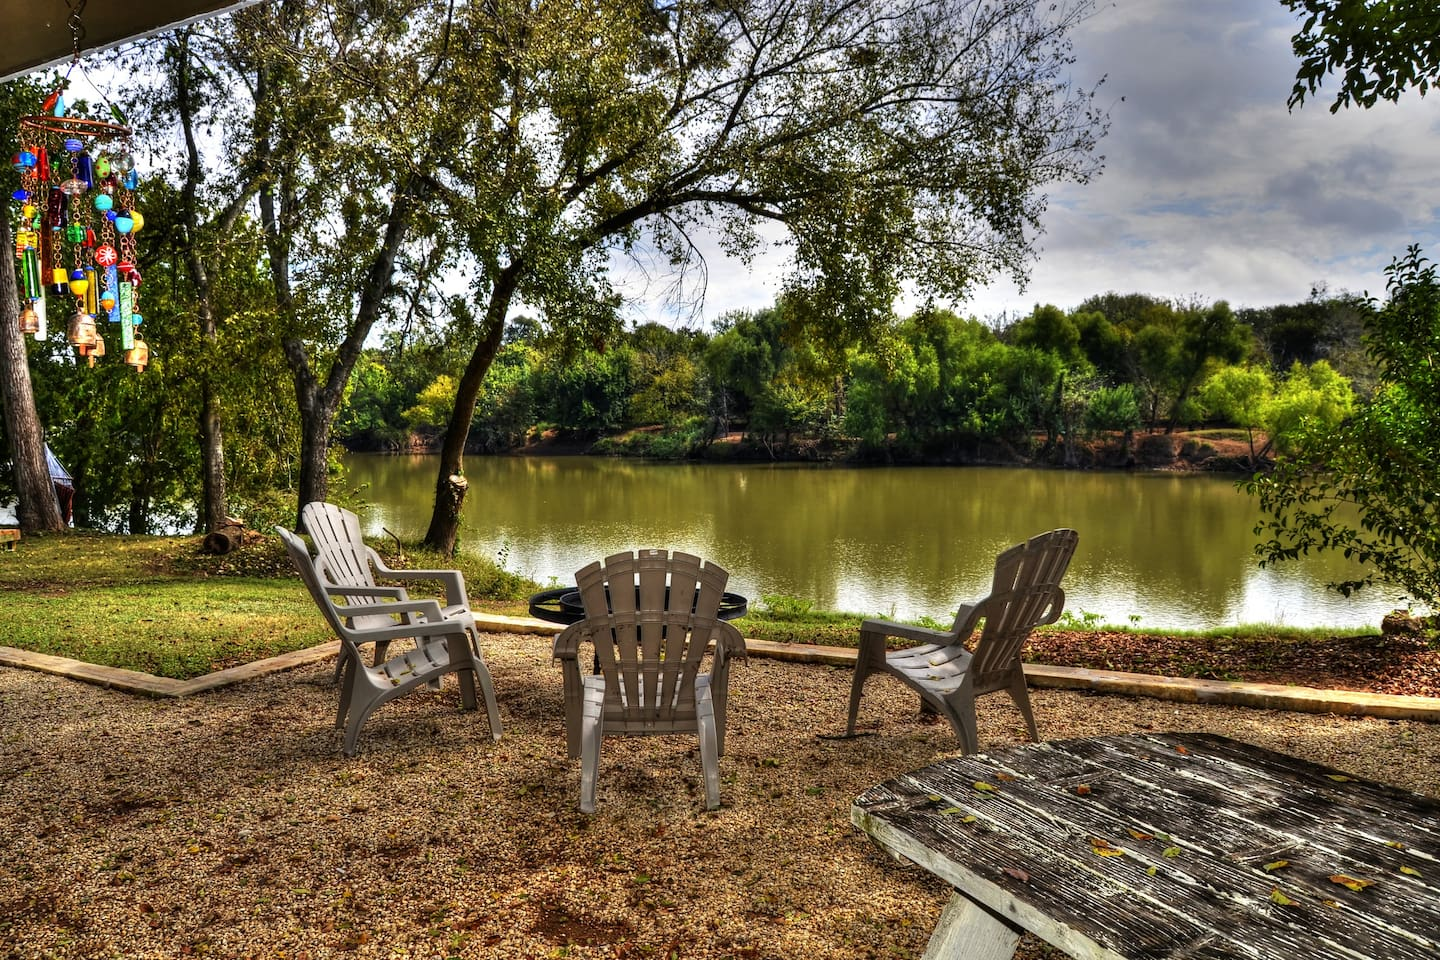 Cabins on the brazos river in texas my marketing journey for Brazos river cabins